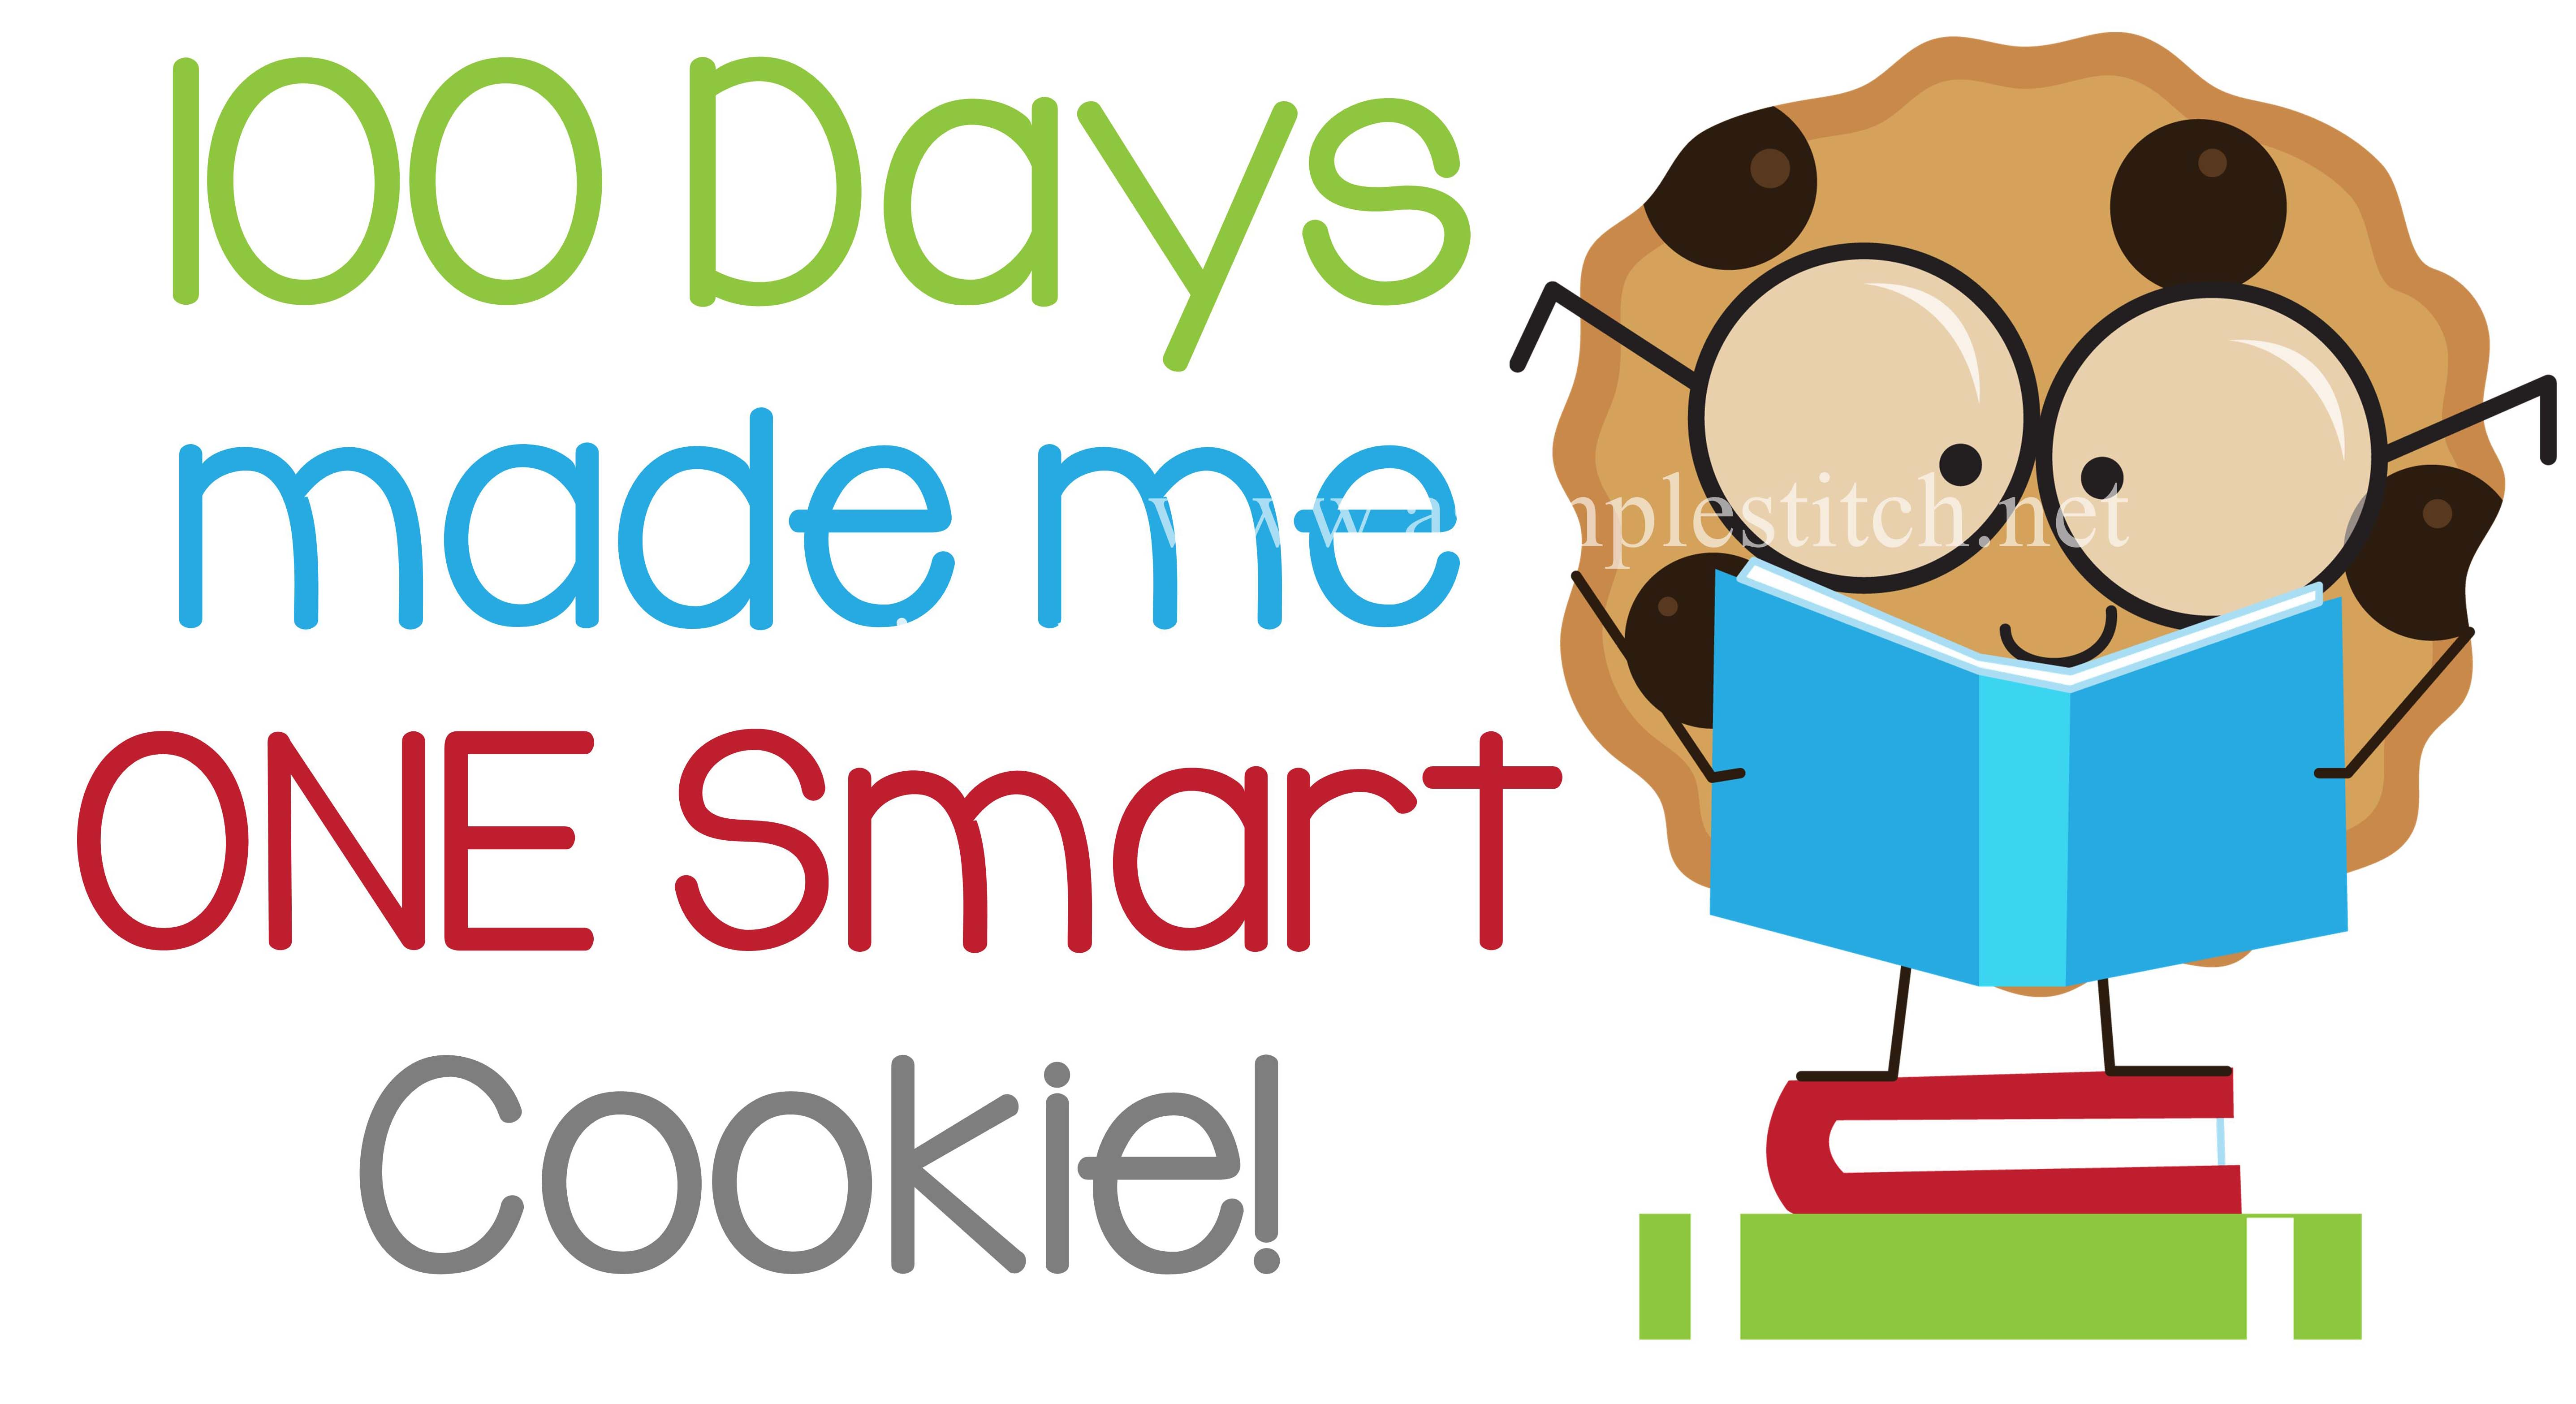 cookie boy asimplestitch. 100 clipart 100 days smart